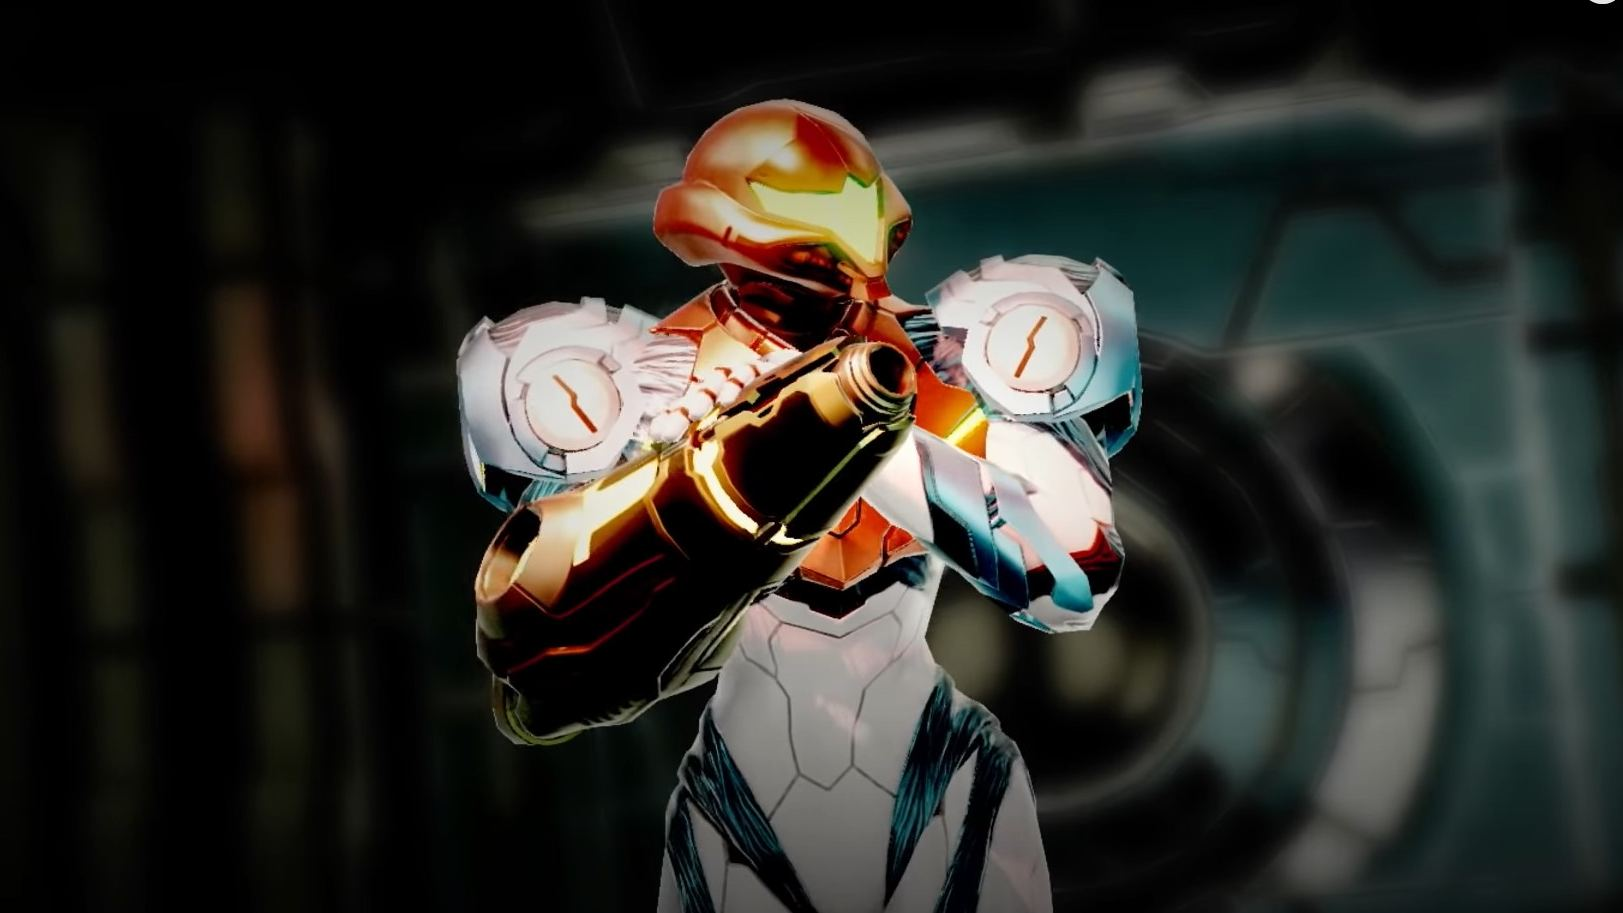 Metroid Dread's arrival on Switch among several vital announcements- Technology News, FP